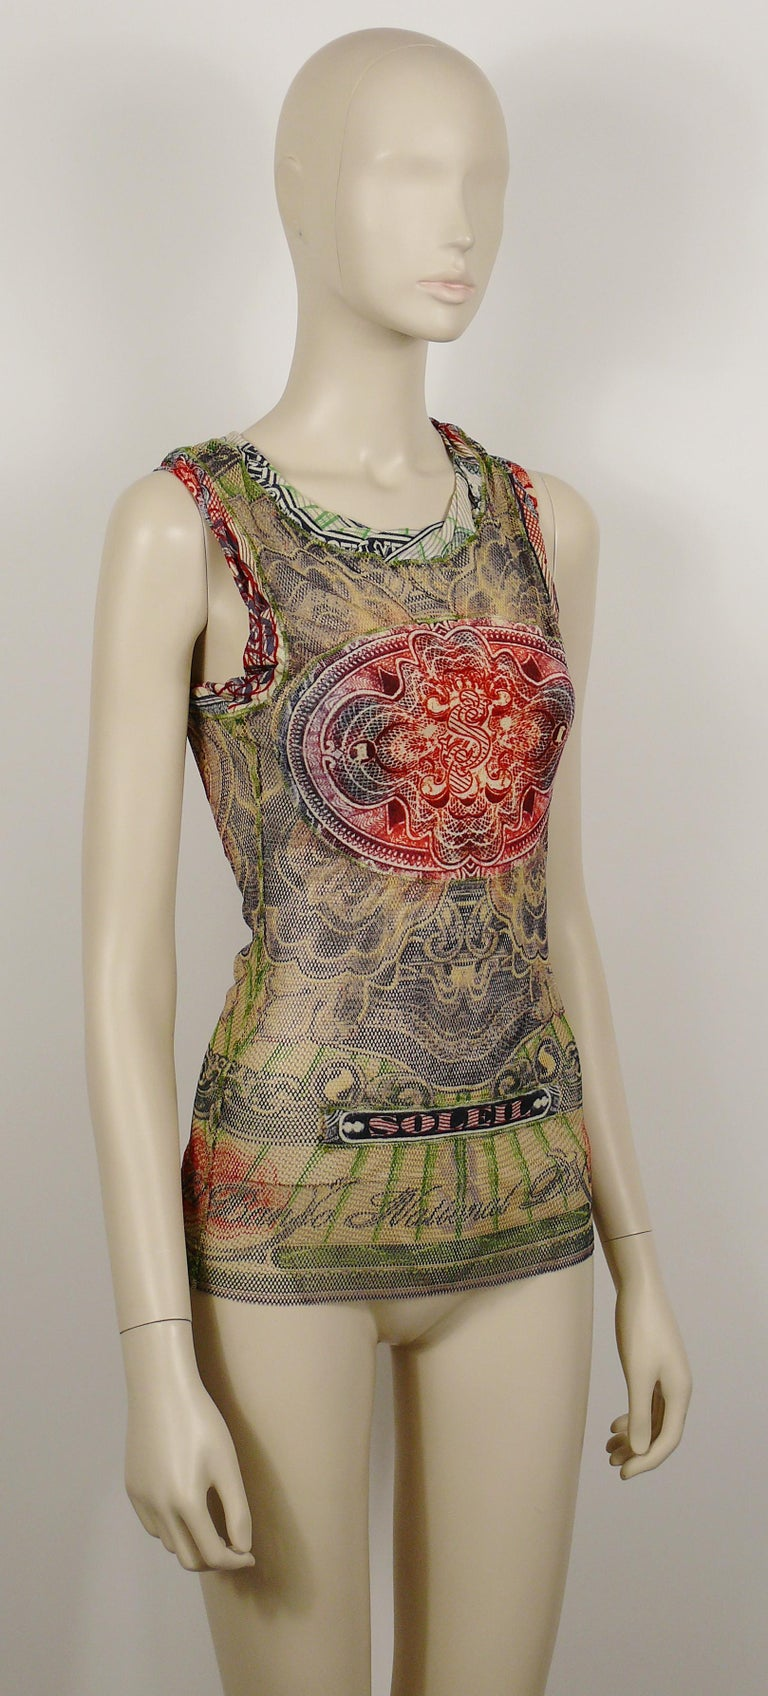 JEAN PAUL GAULTIER vintage sheer fishnet tank top featuring a banknote print.  Label reads JEAN PAUL GAULTIER Soleil.  Size label reads : S. Please refer to measurements.  Mission composition label.  Indicative measurements taken laid flat and